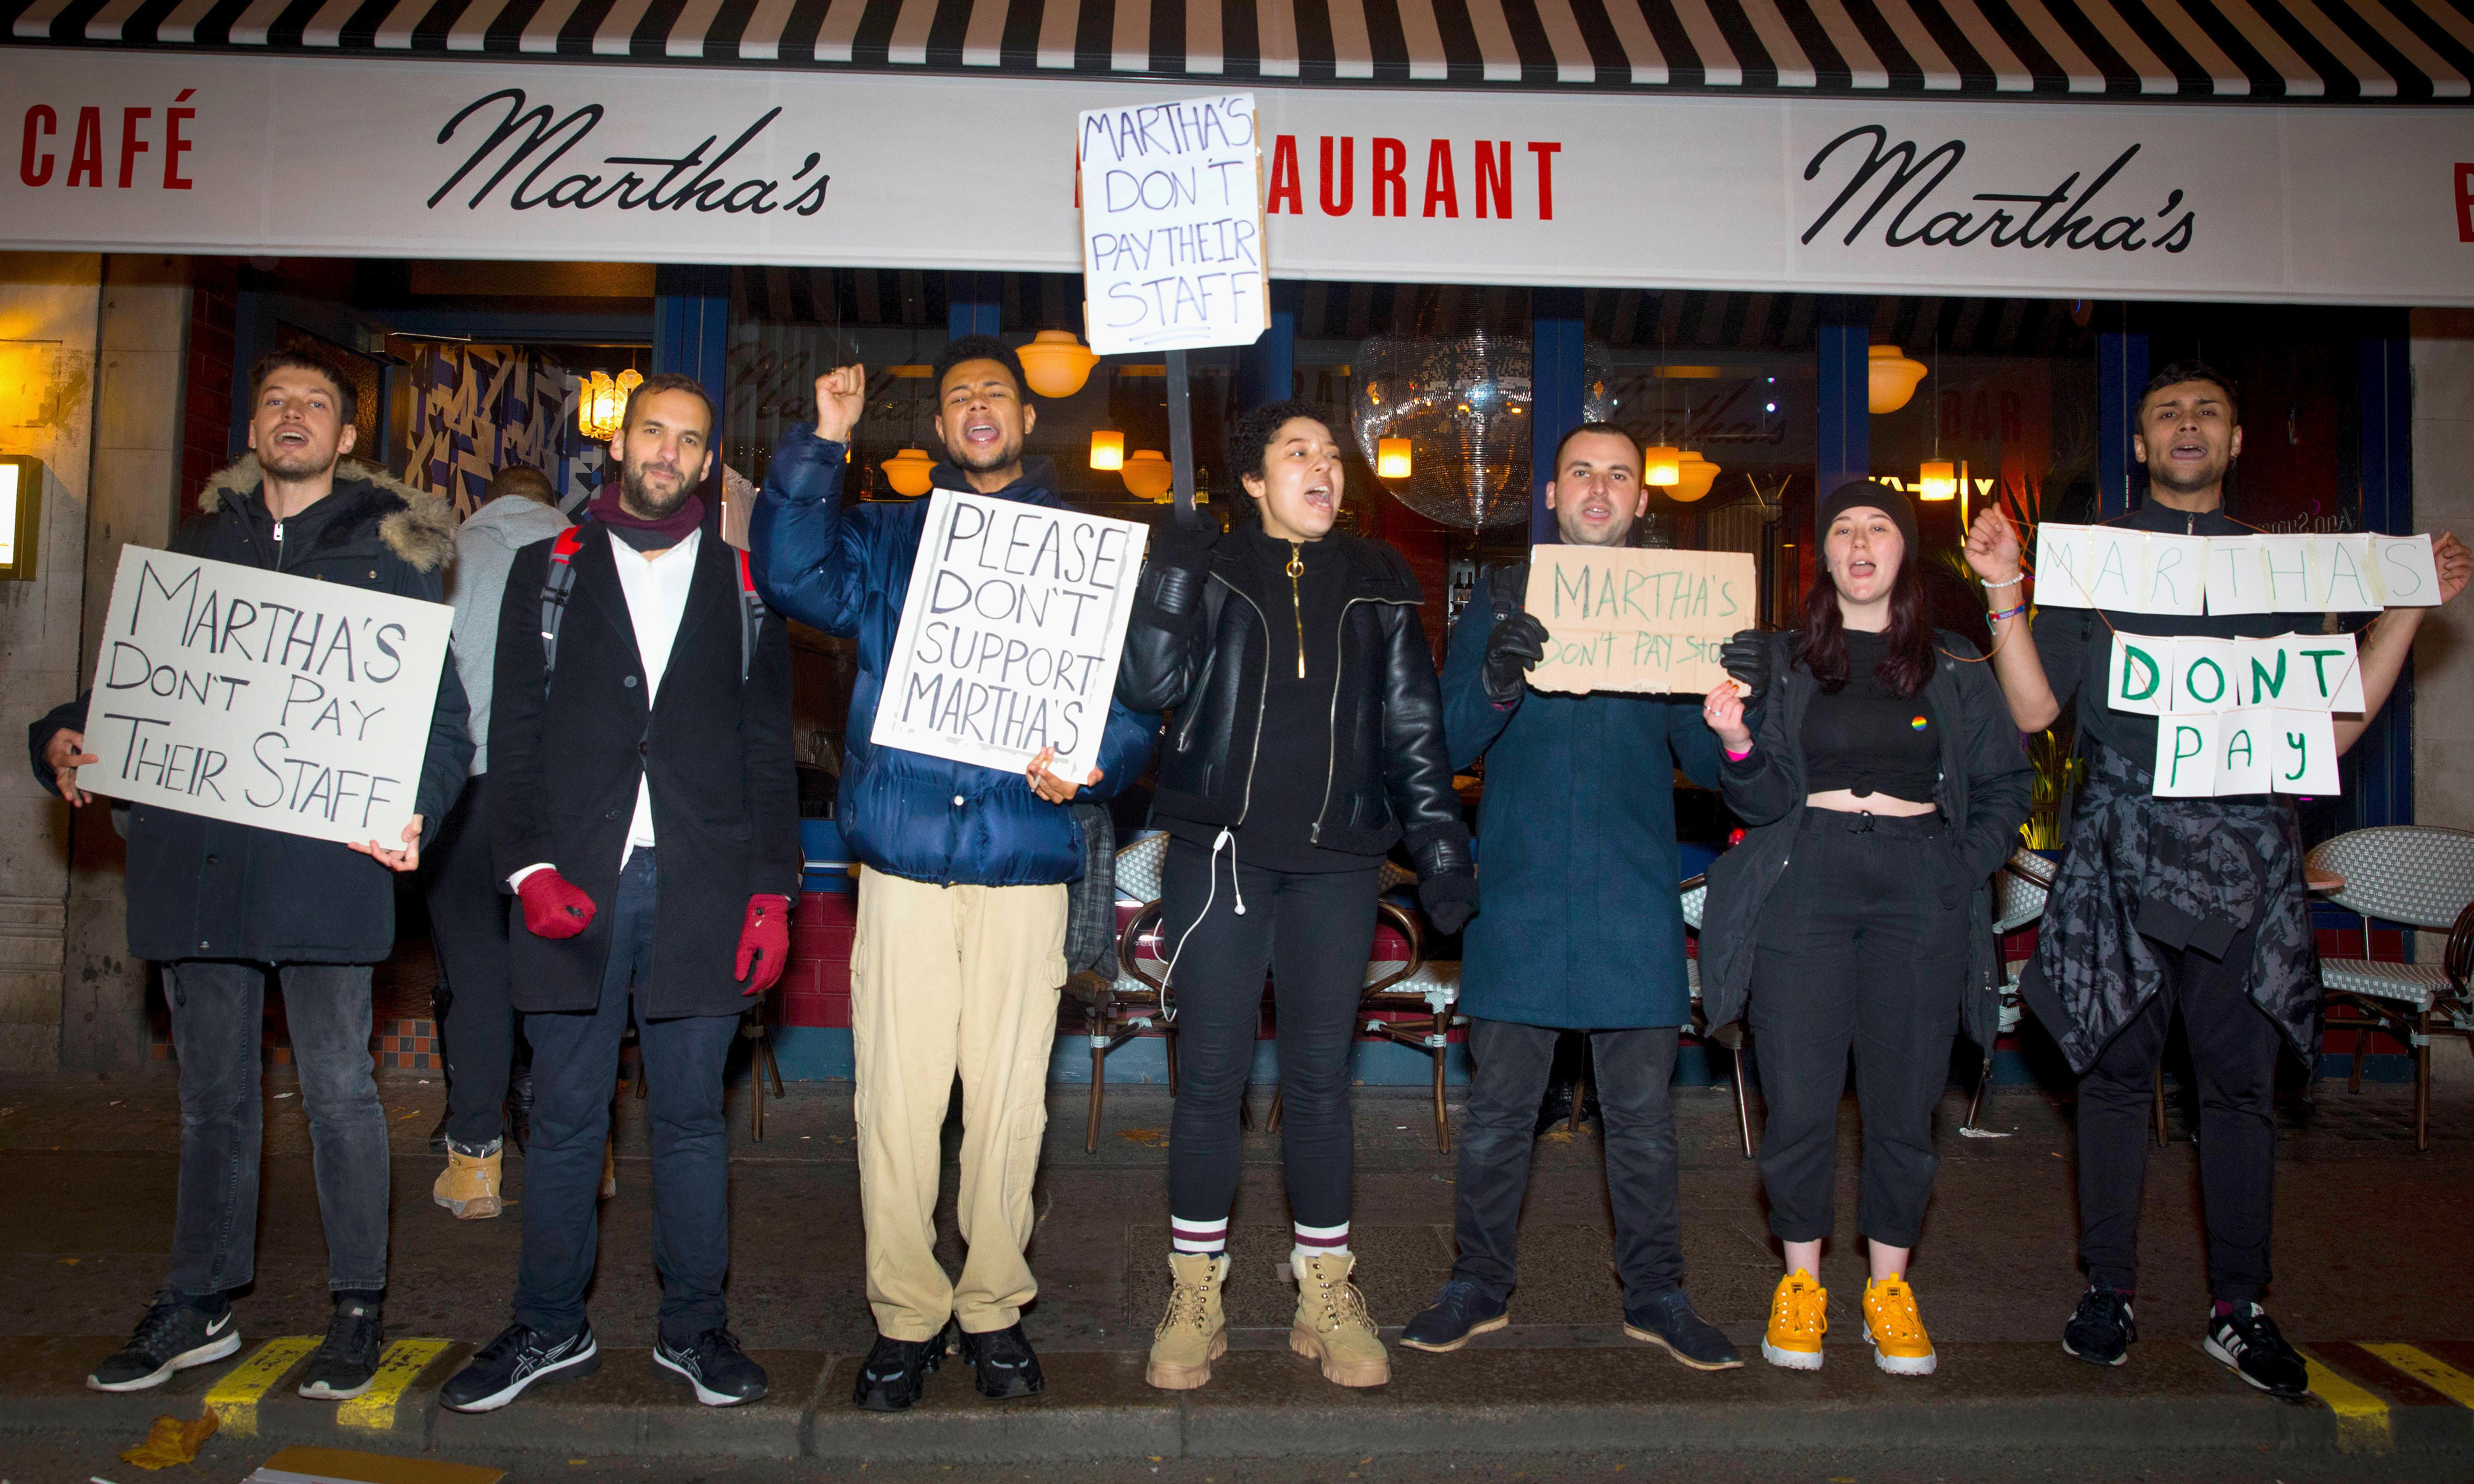 Former staff at Soho restaurant say they are owed wages